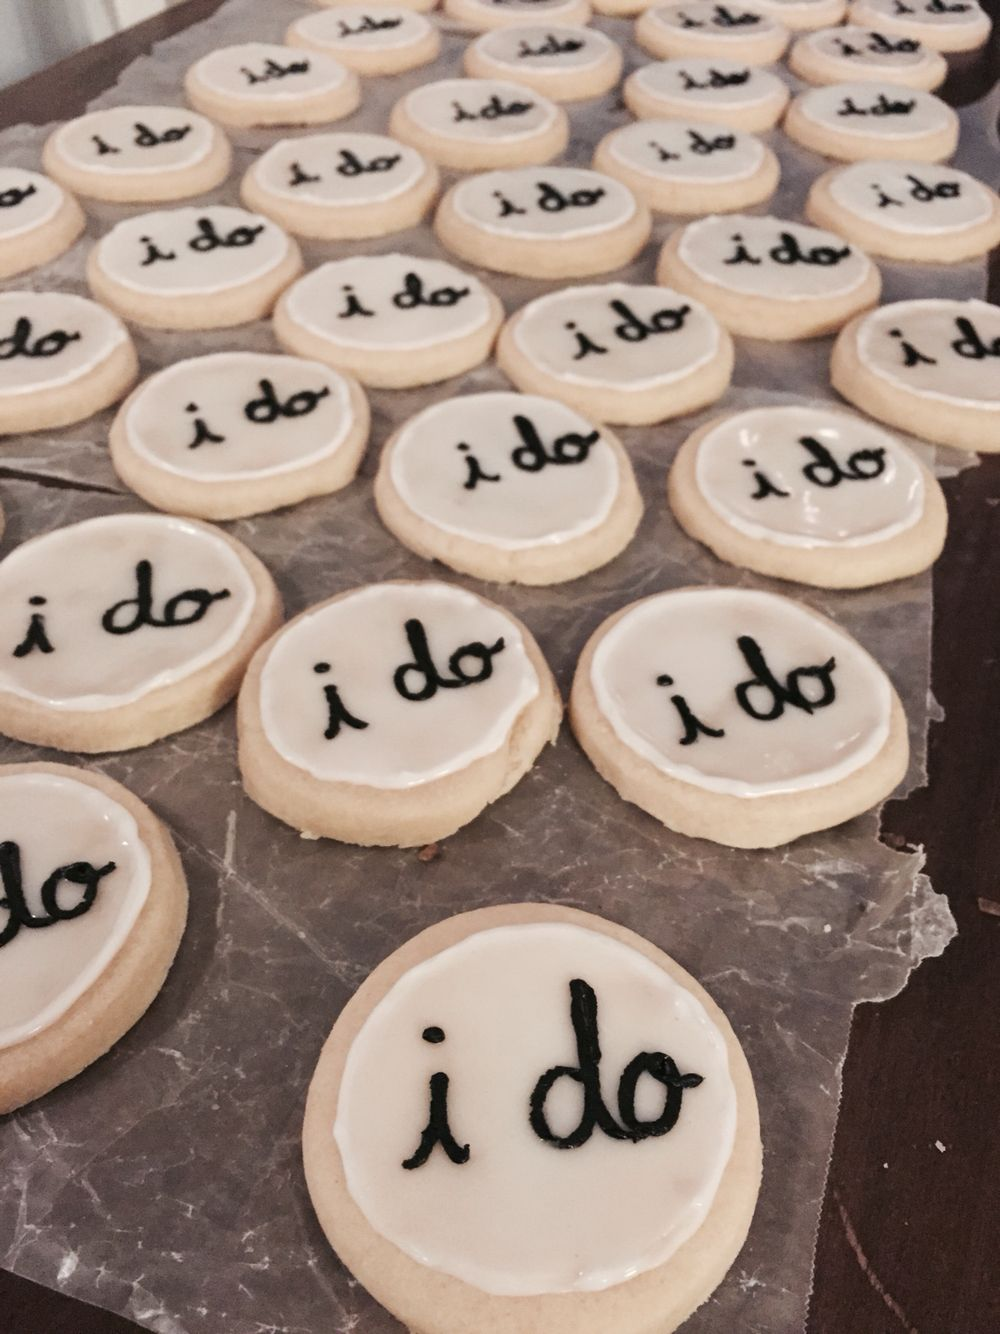 Sugar cookies icing I Do hardens bridal shower, bachelorette party, wedding Read more at : http://theweddingly.com/